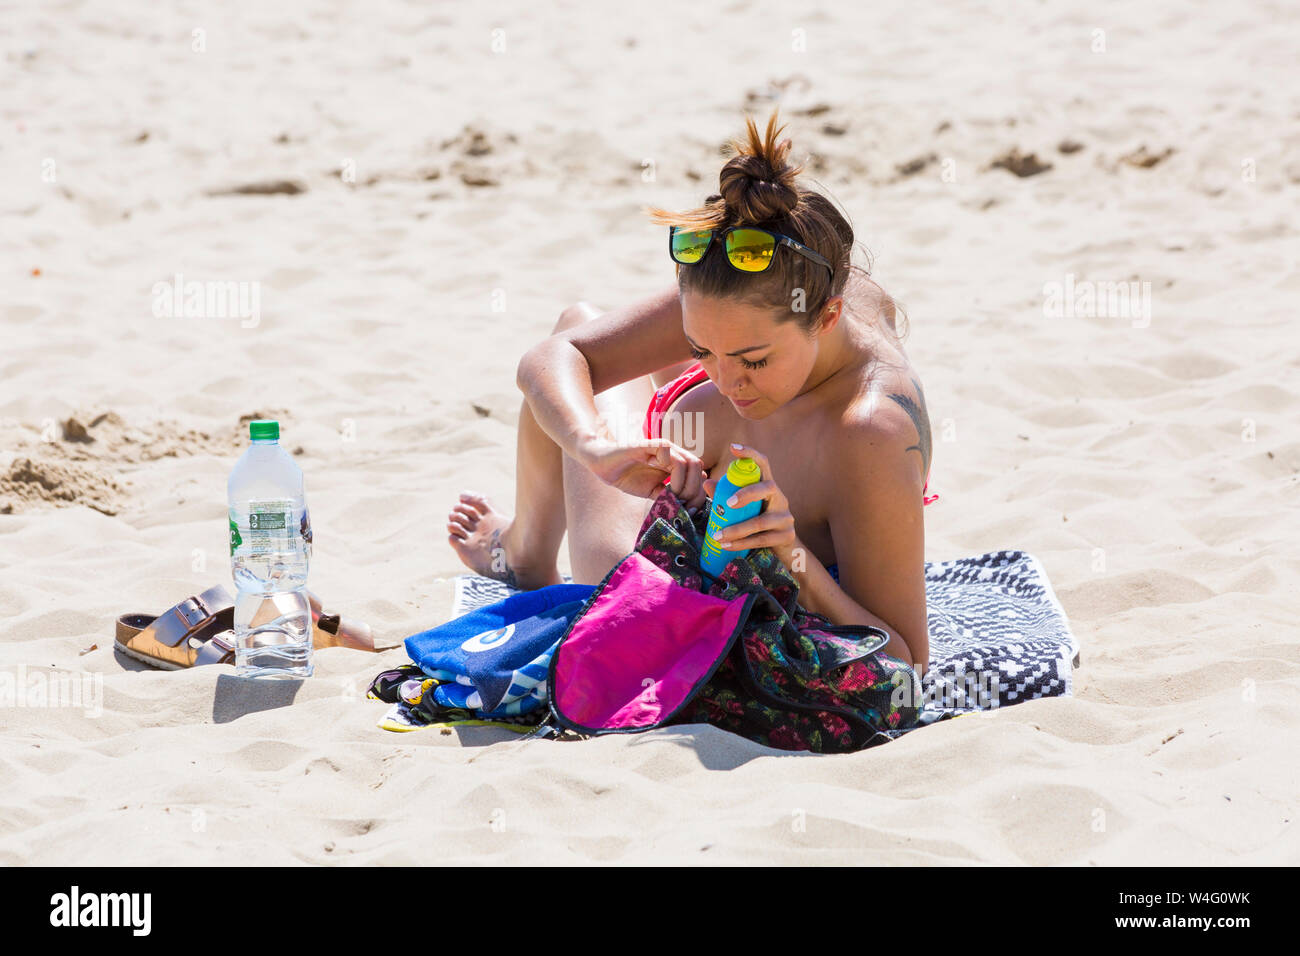 Bournemouth, Dorset UK. 23rd July 2019. UK weather: thousands flock to the beaches at Bournemouth during the heatwave on a scorching hot and sunny day. Reaching for the suncream. Credit: Carolyn Jenkins/Alamy Live News Stock Photo